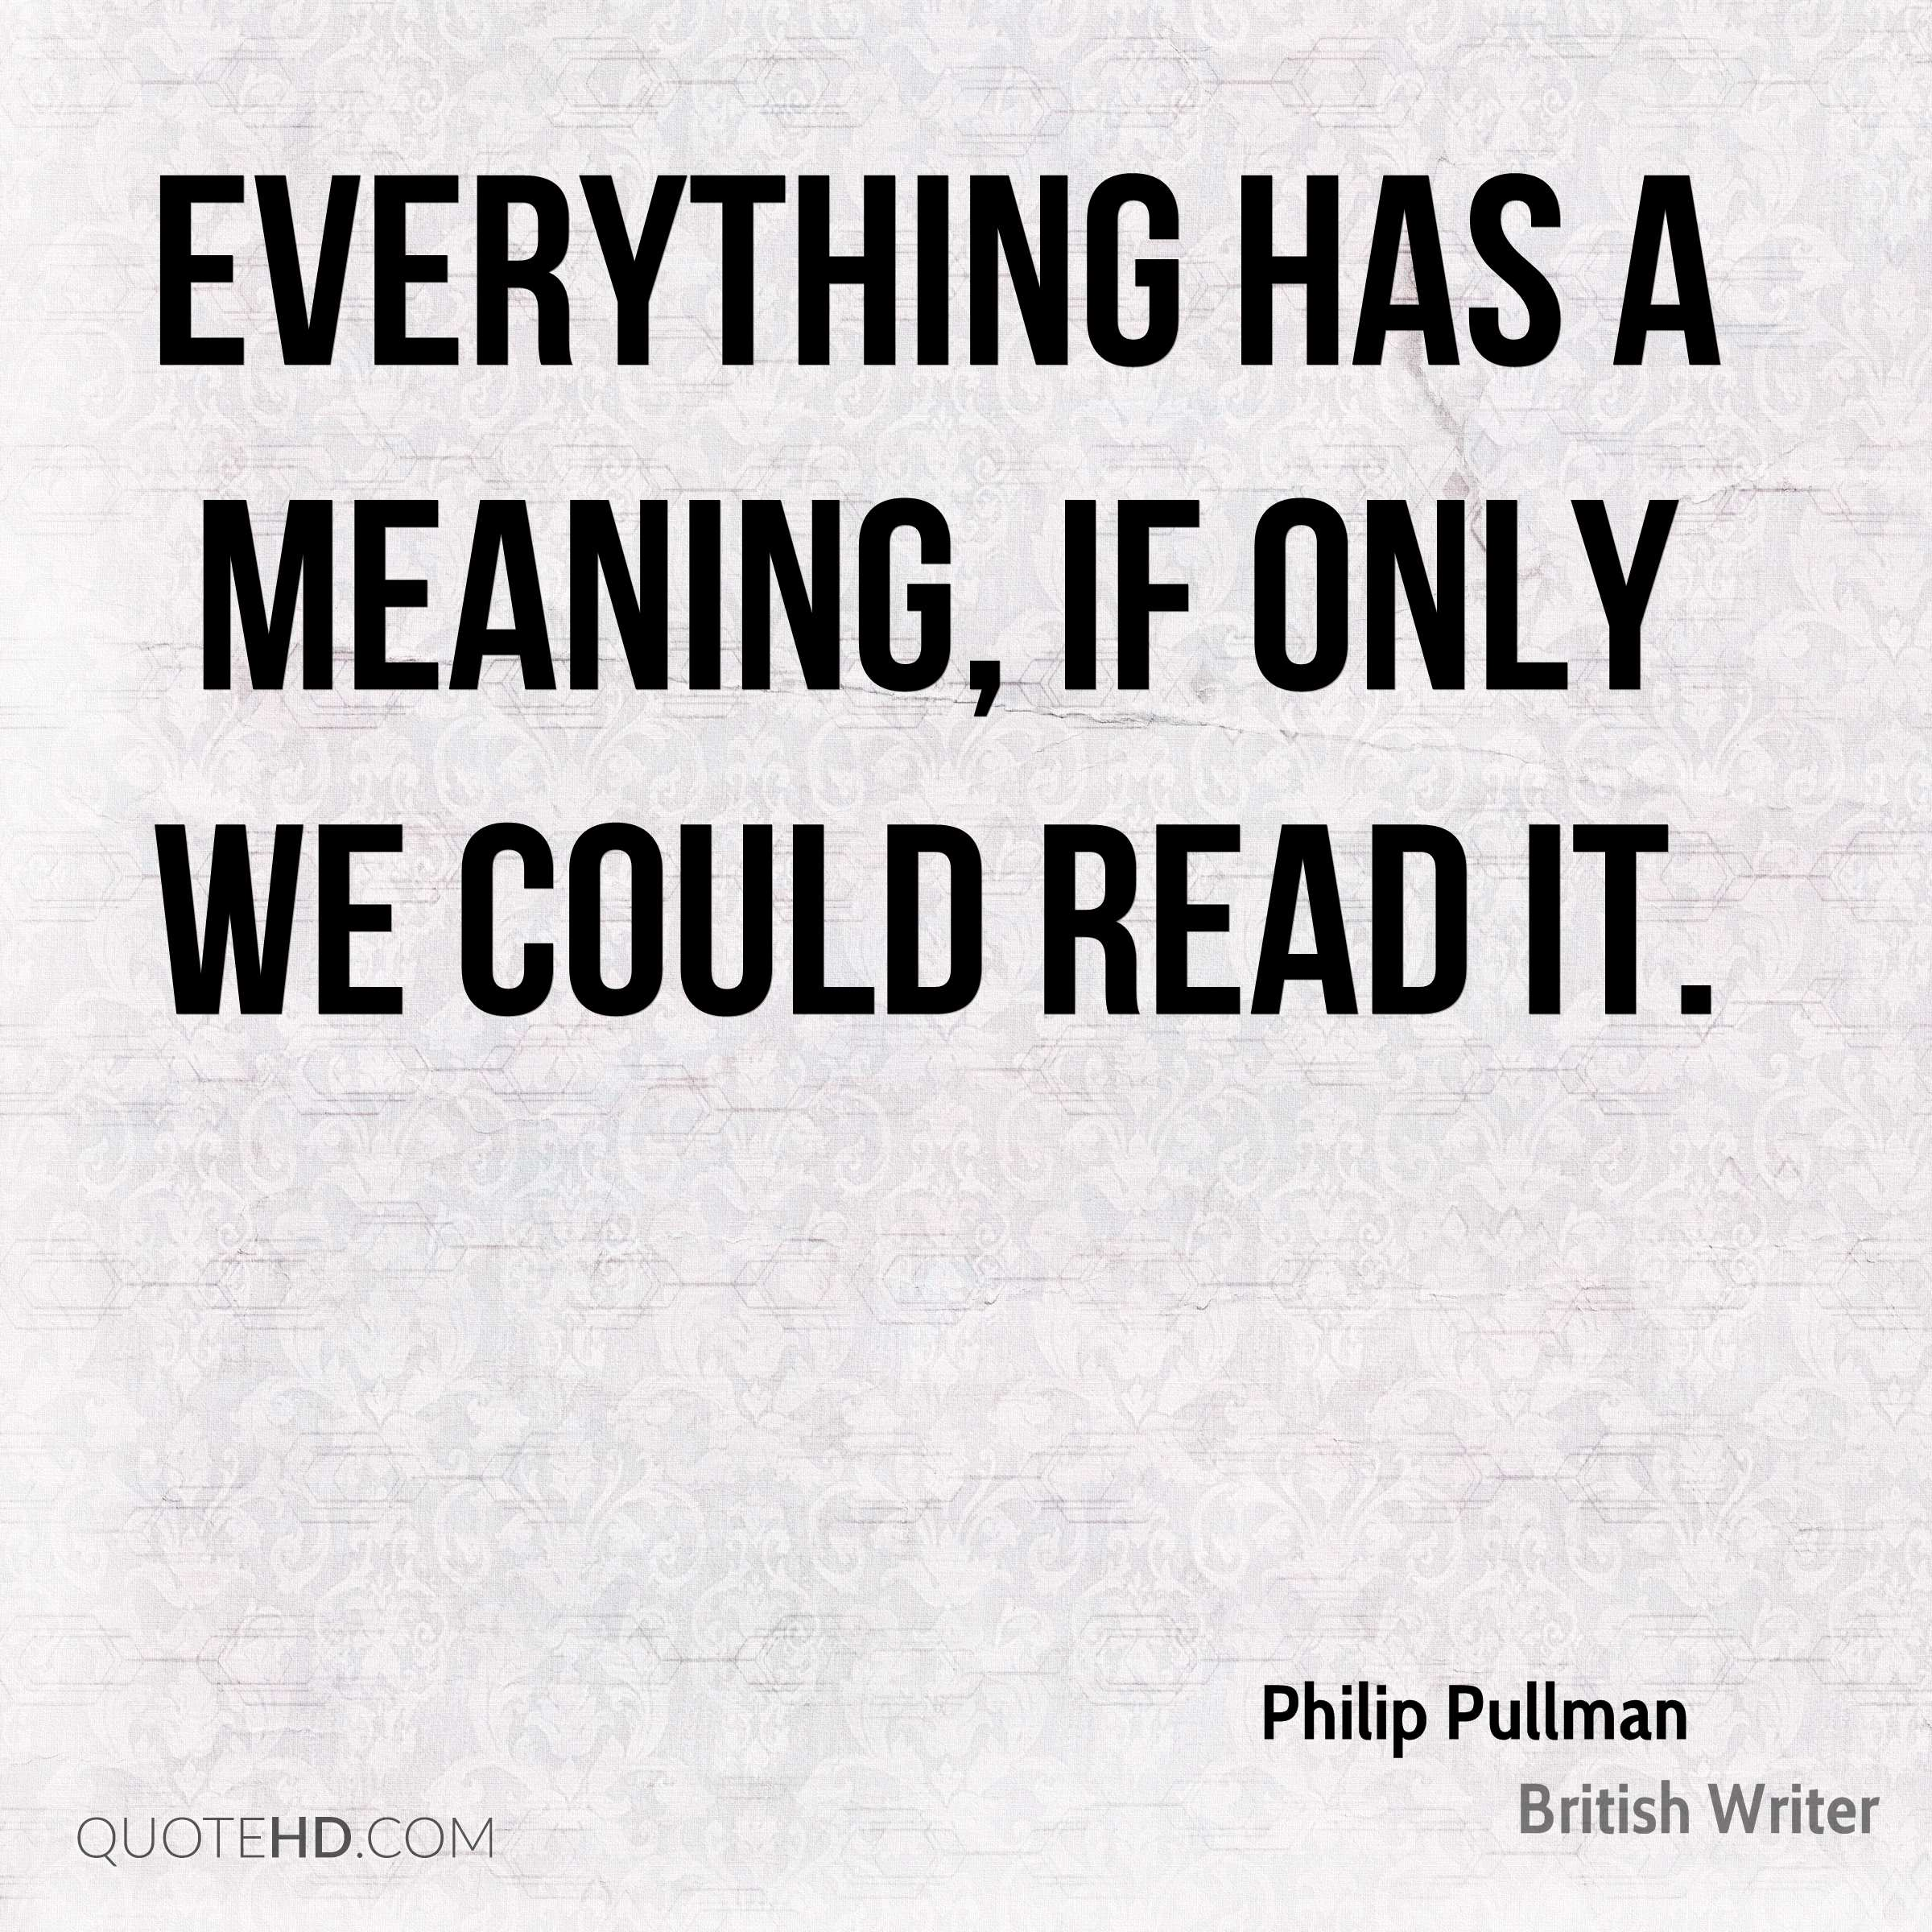 Everything Has A Meaning If Only We Could Read It